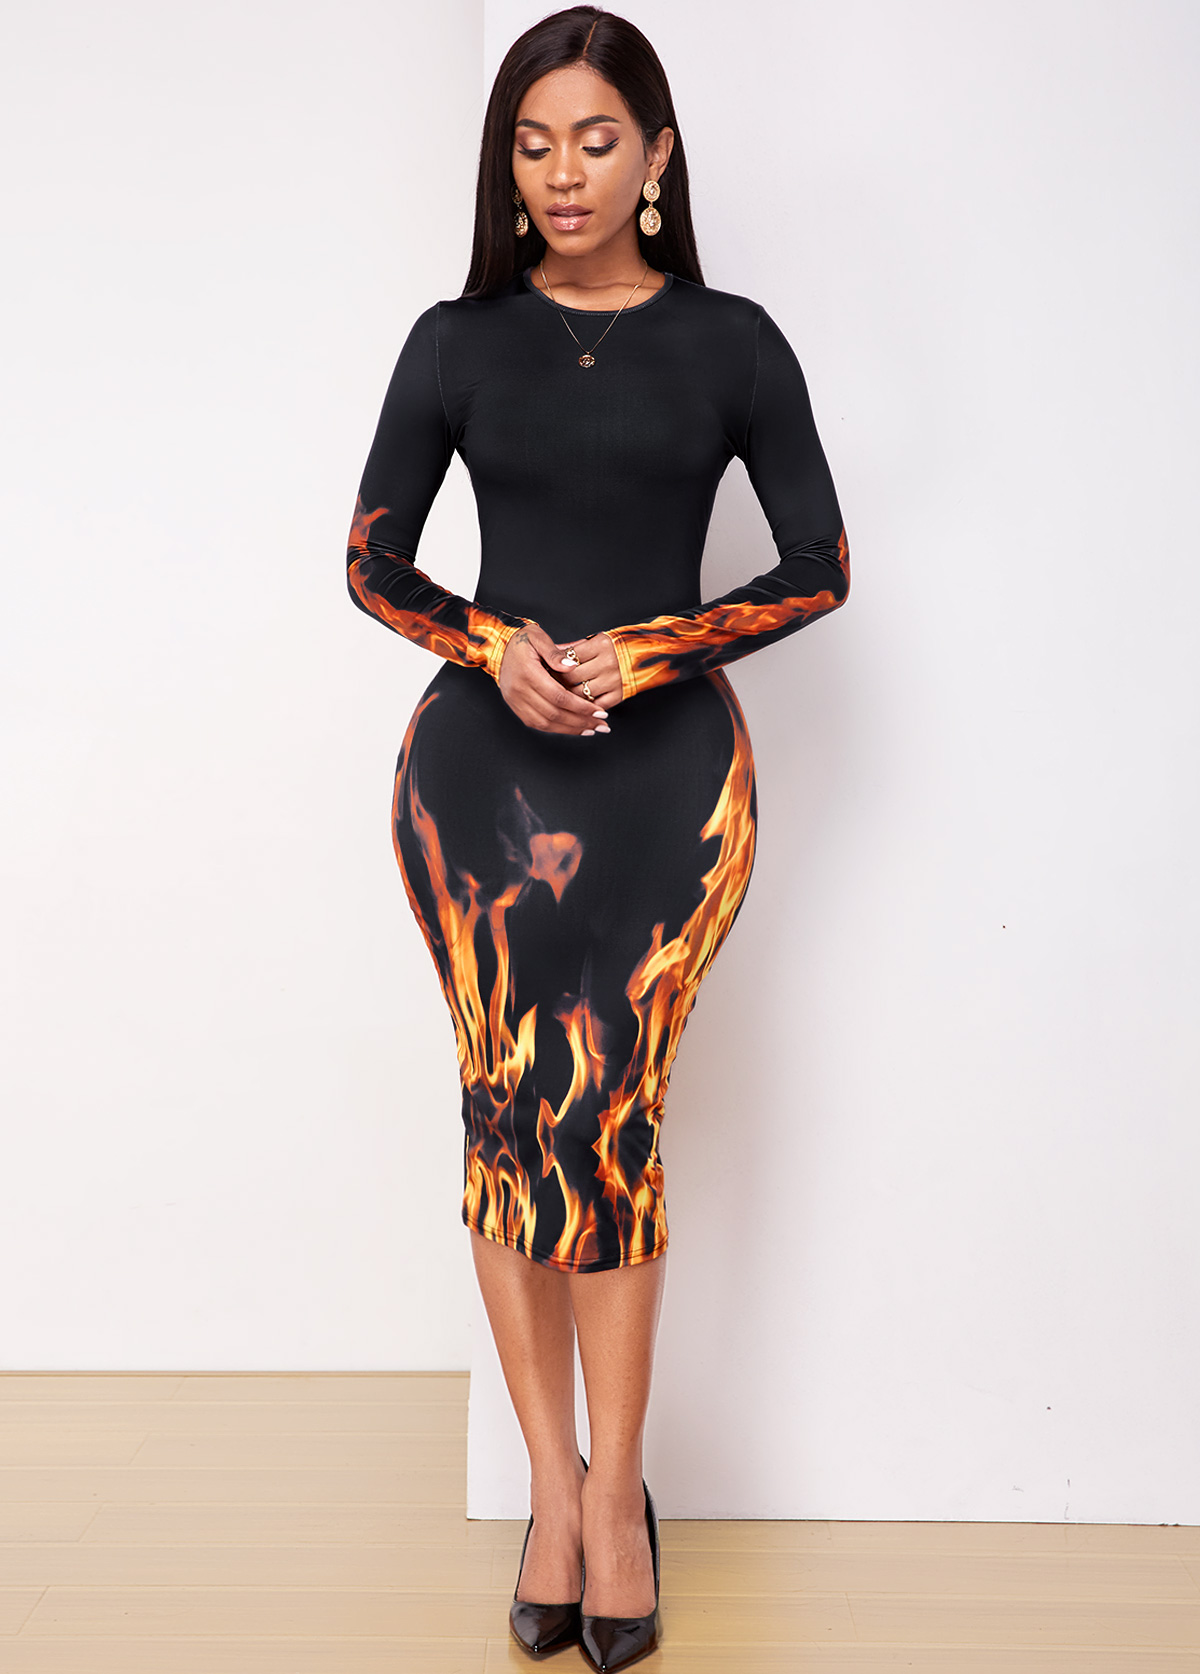 Flame print Long Sleeve Round Neck Dress